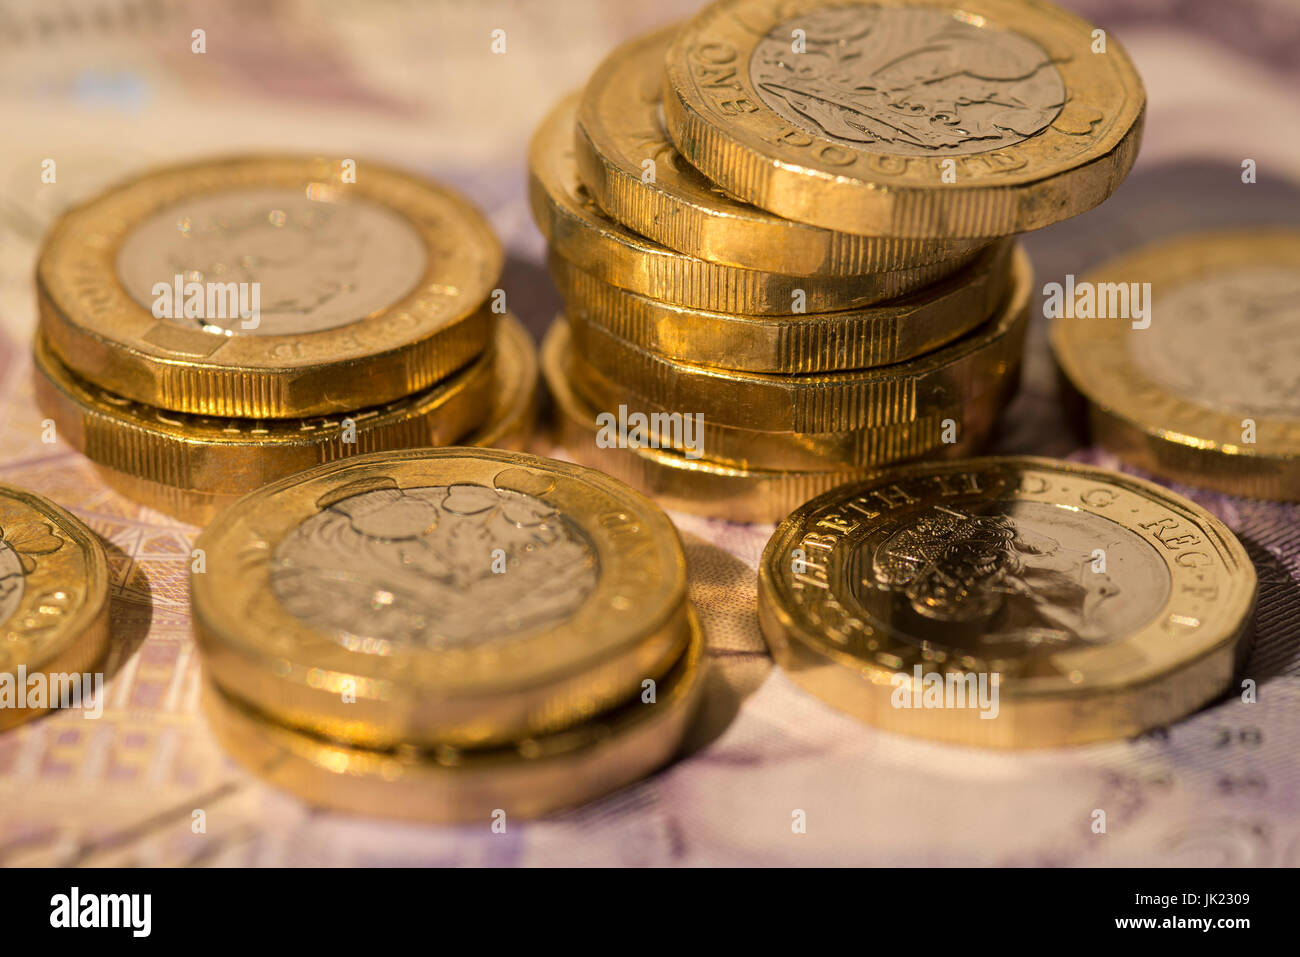 New (2016) British pound (GBP) coins sitting on a 20 pound note. - Stock Image